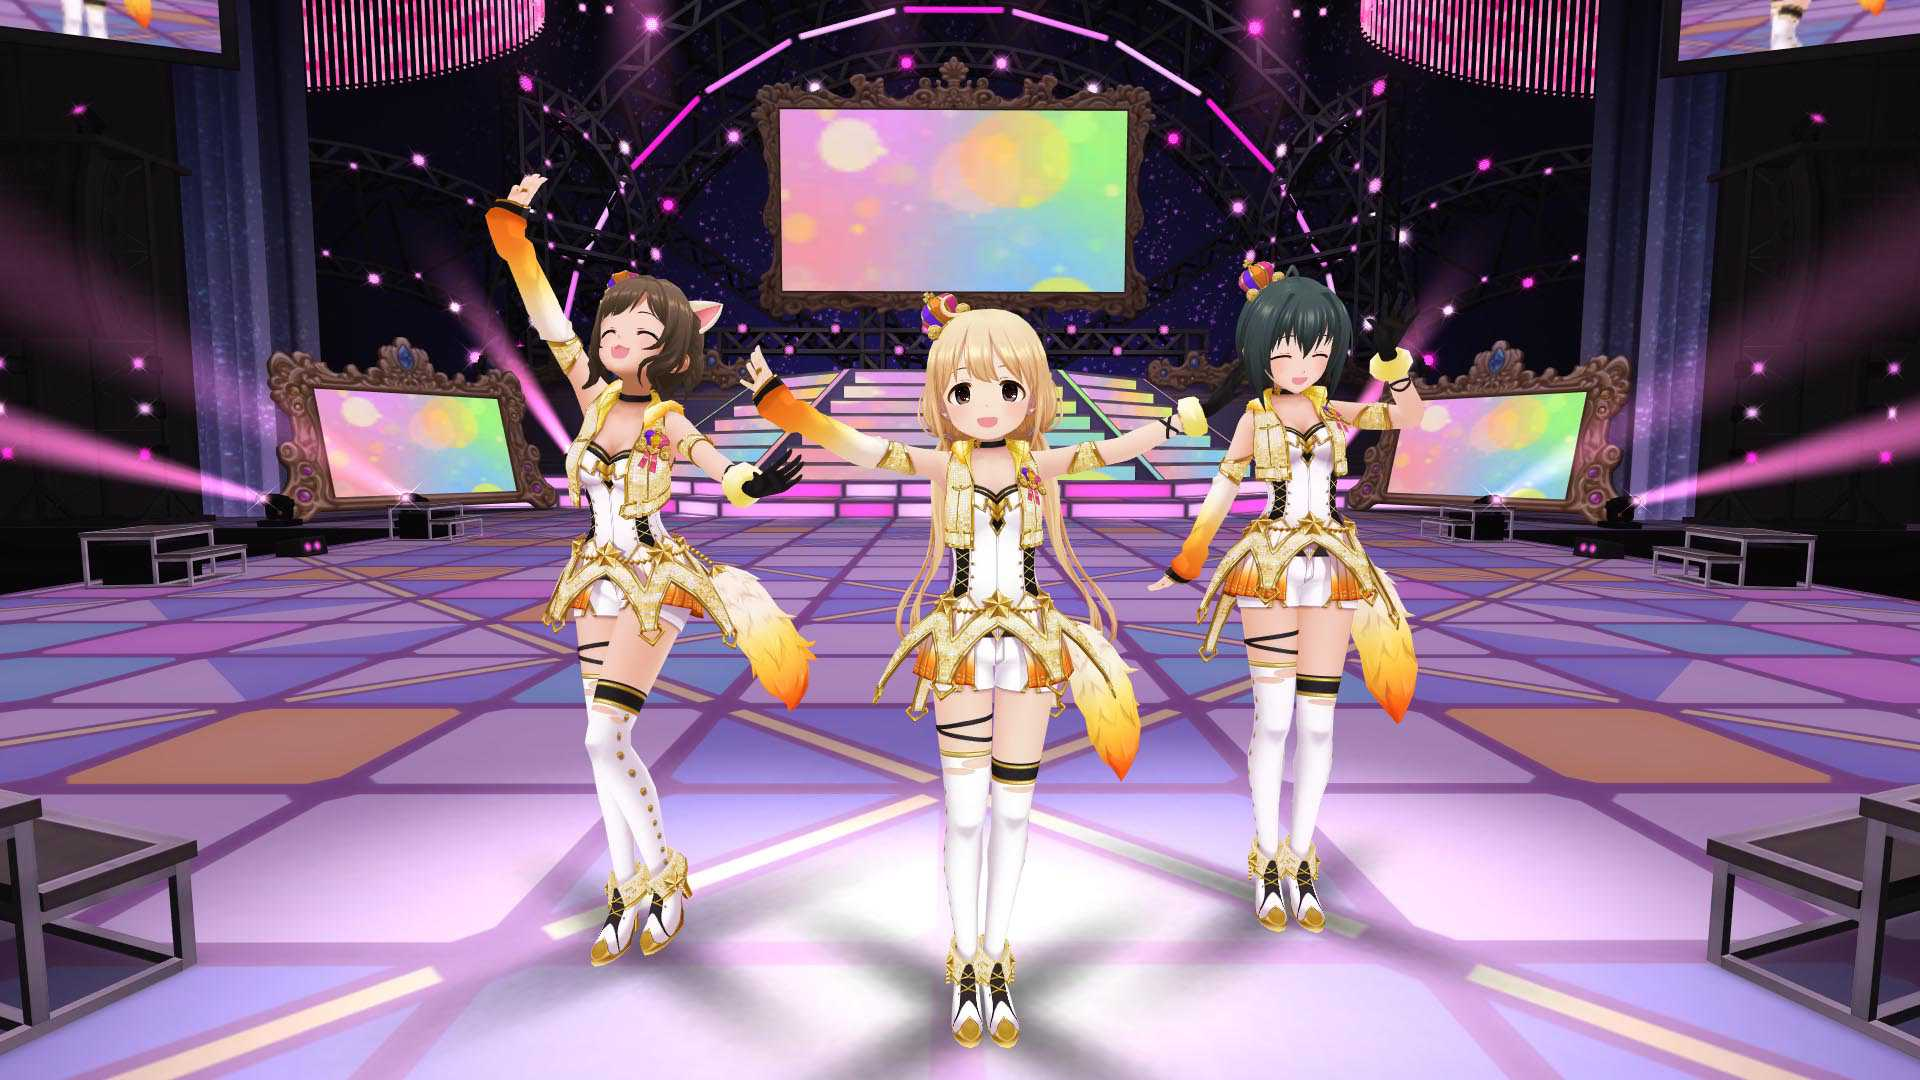 THE IDOLM@STER CINDERELLA GIRLS VIEWING REVOLUTION